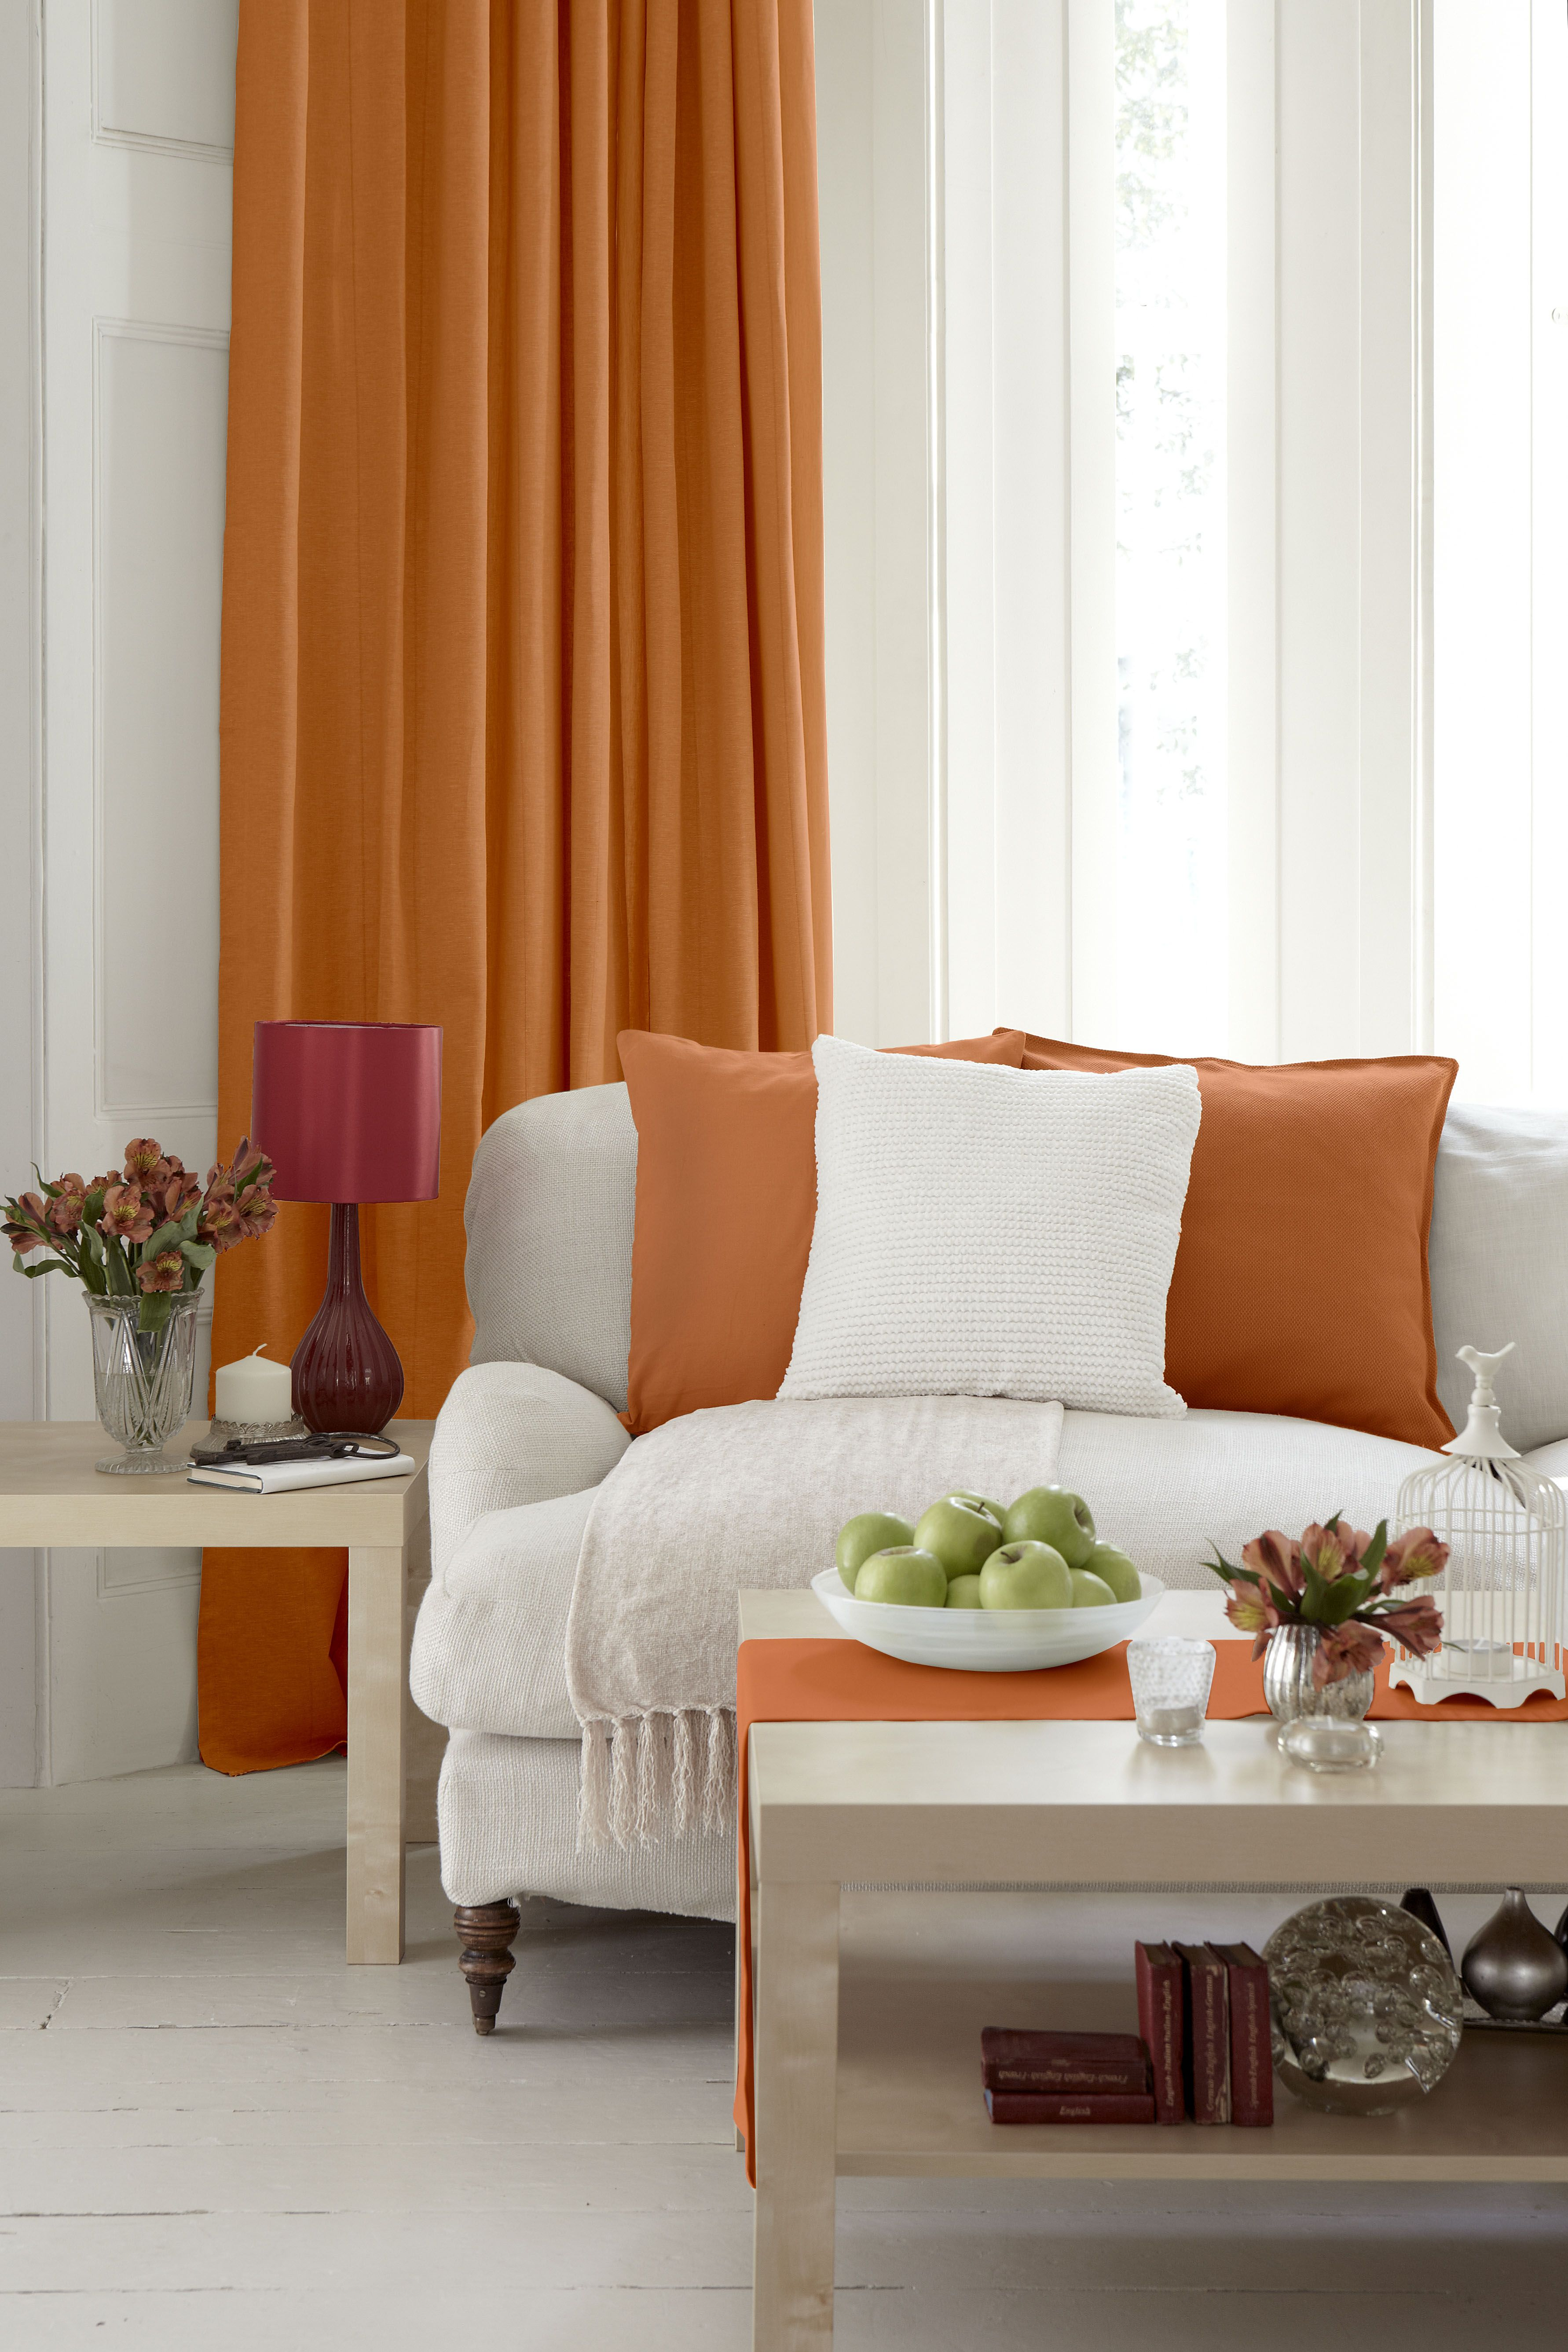 Pack a punch by using DYLON Goldfish Orange Machine dye to liven